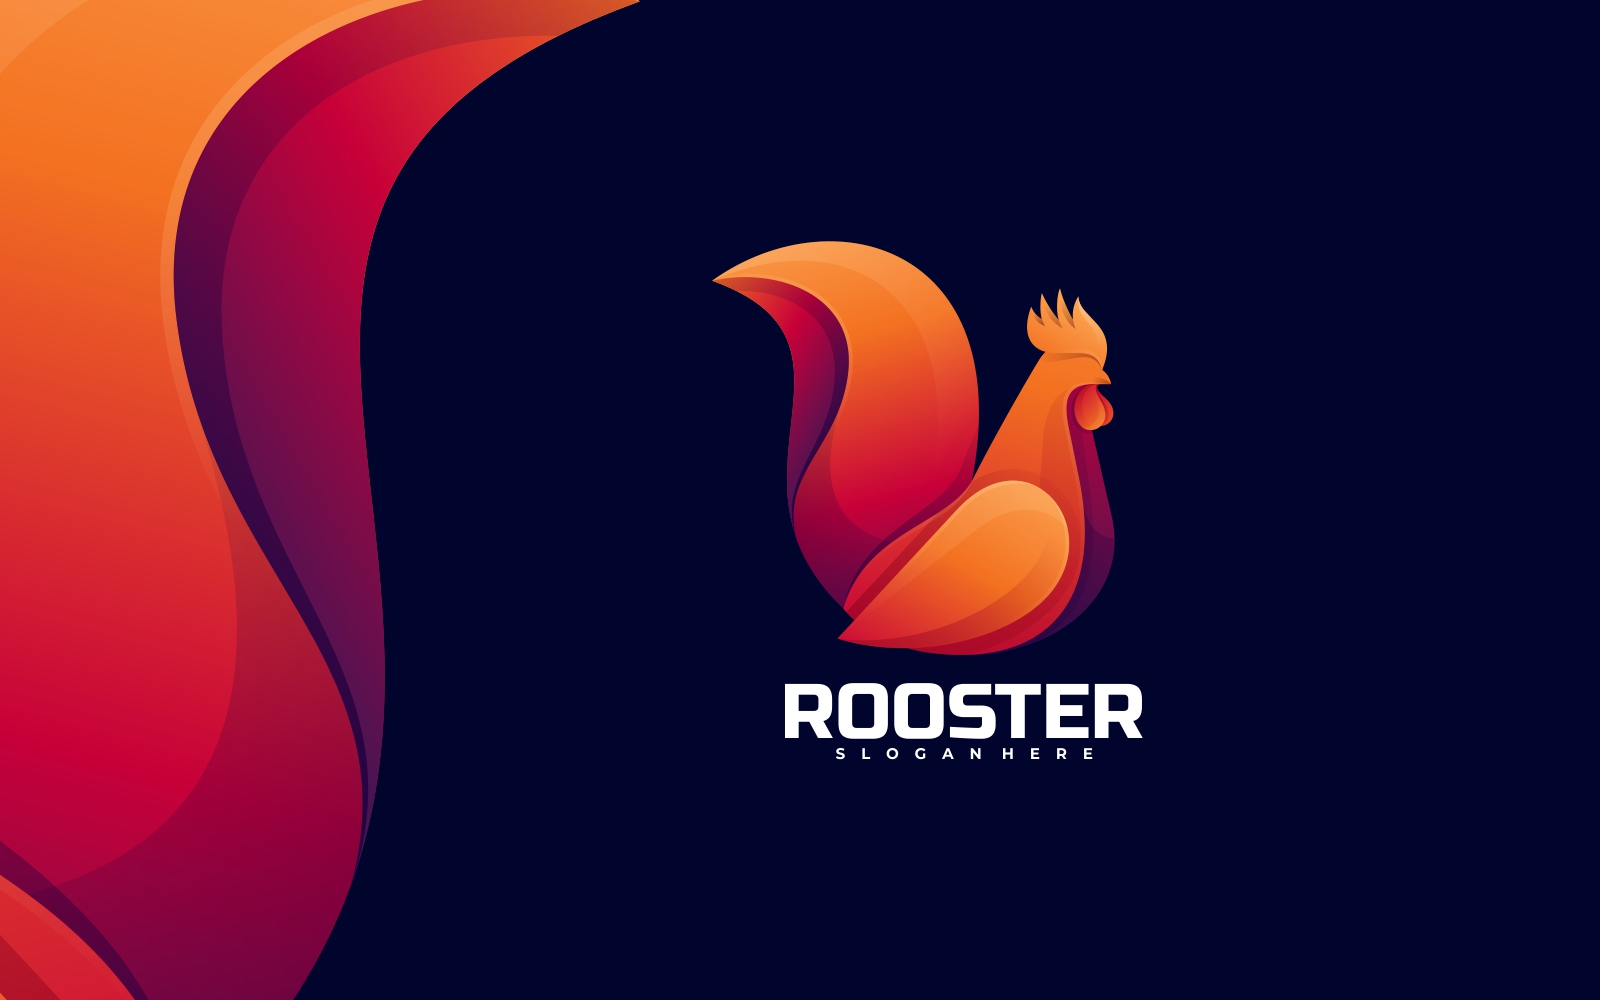 Rooster 3D Gradient Logo Style Template